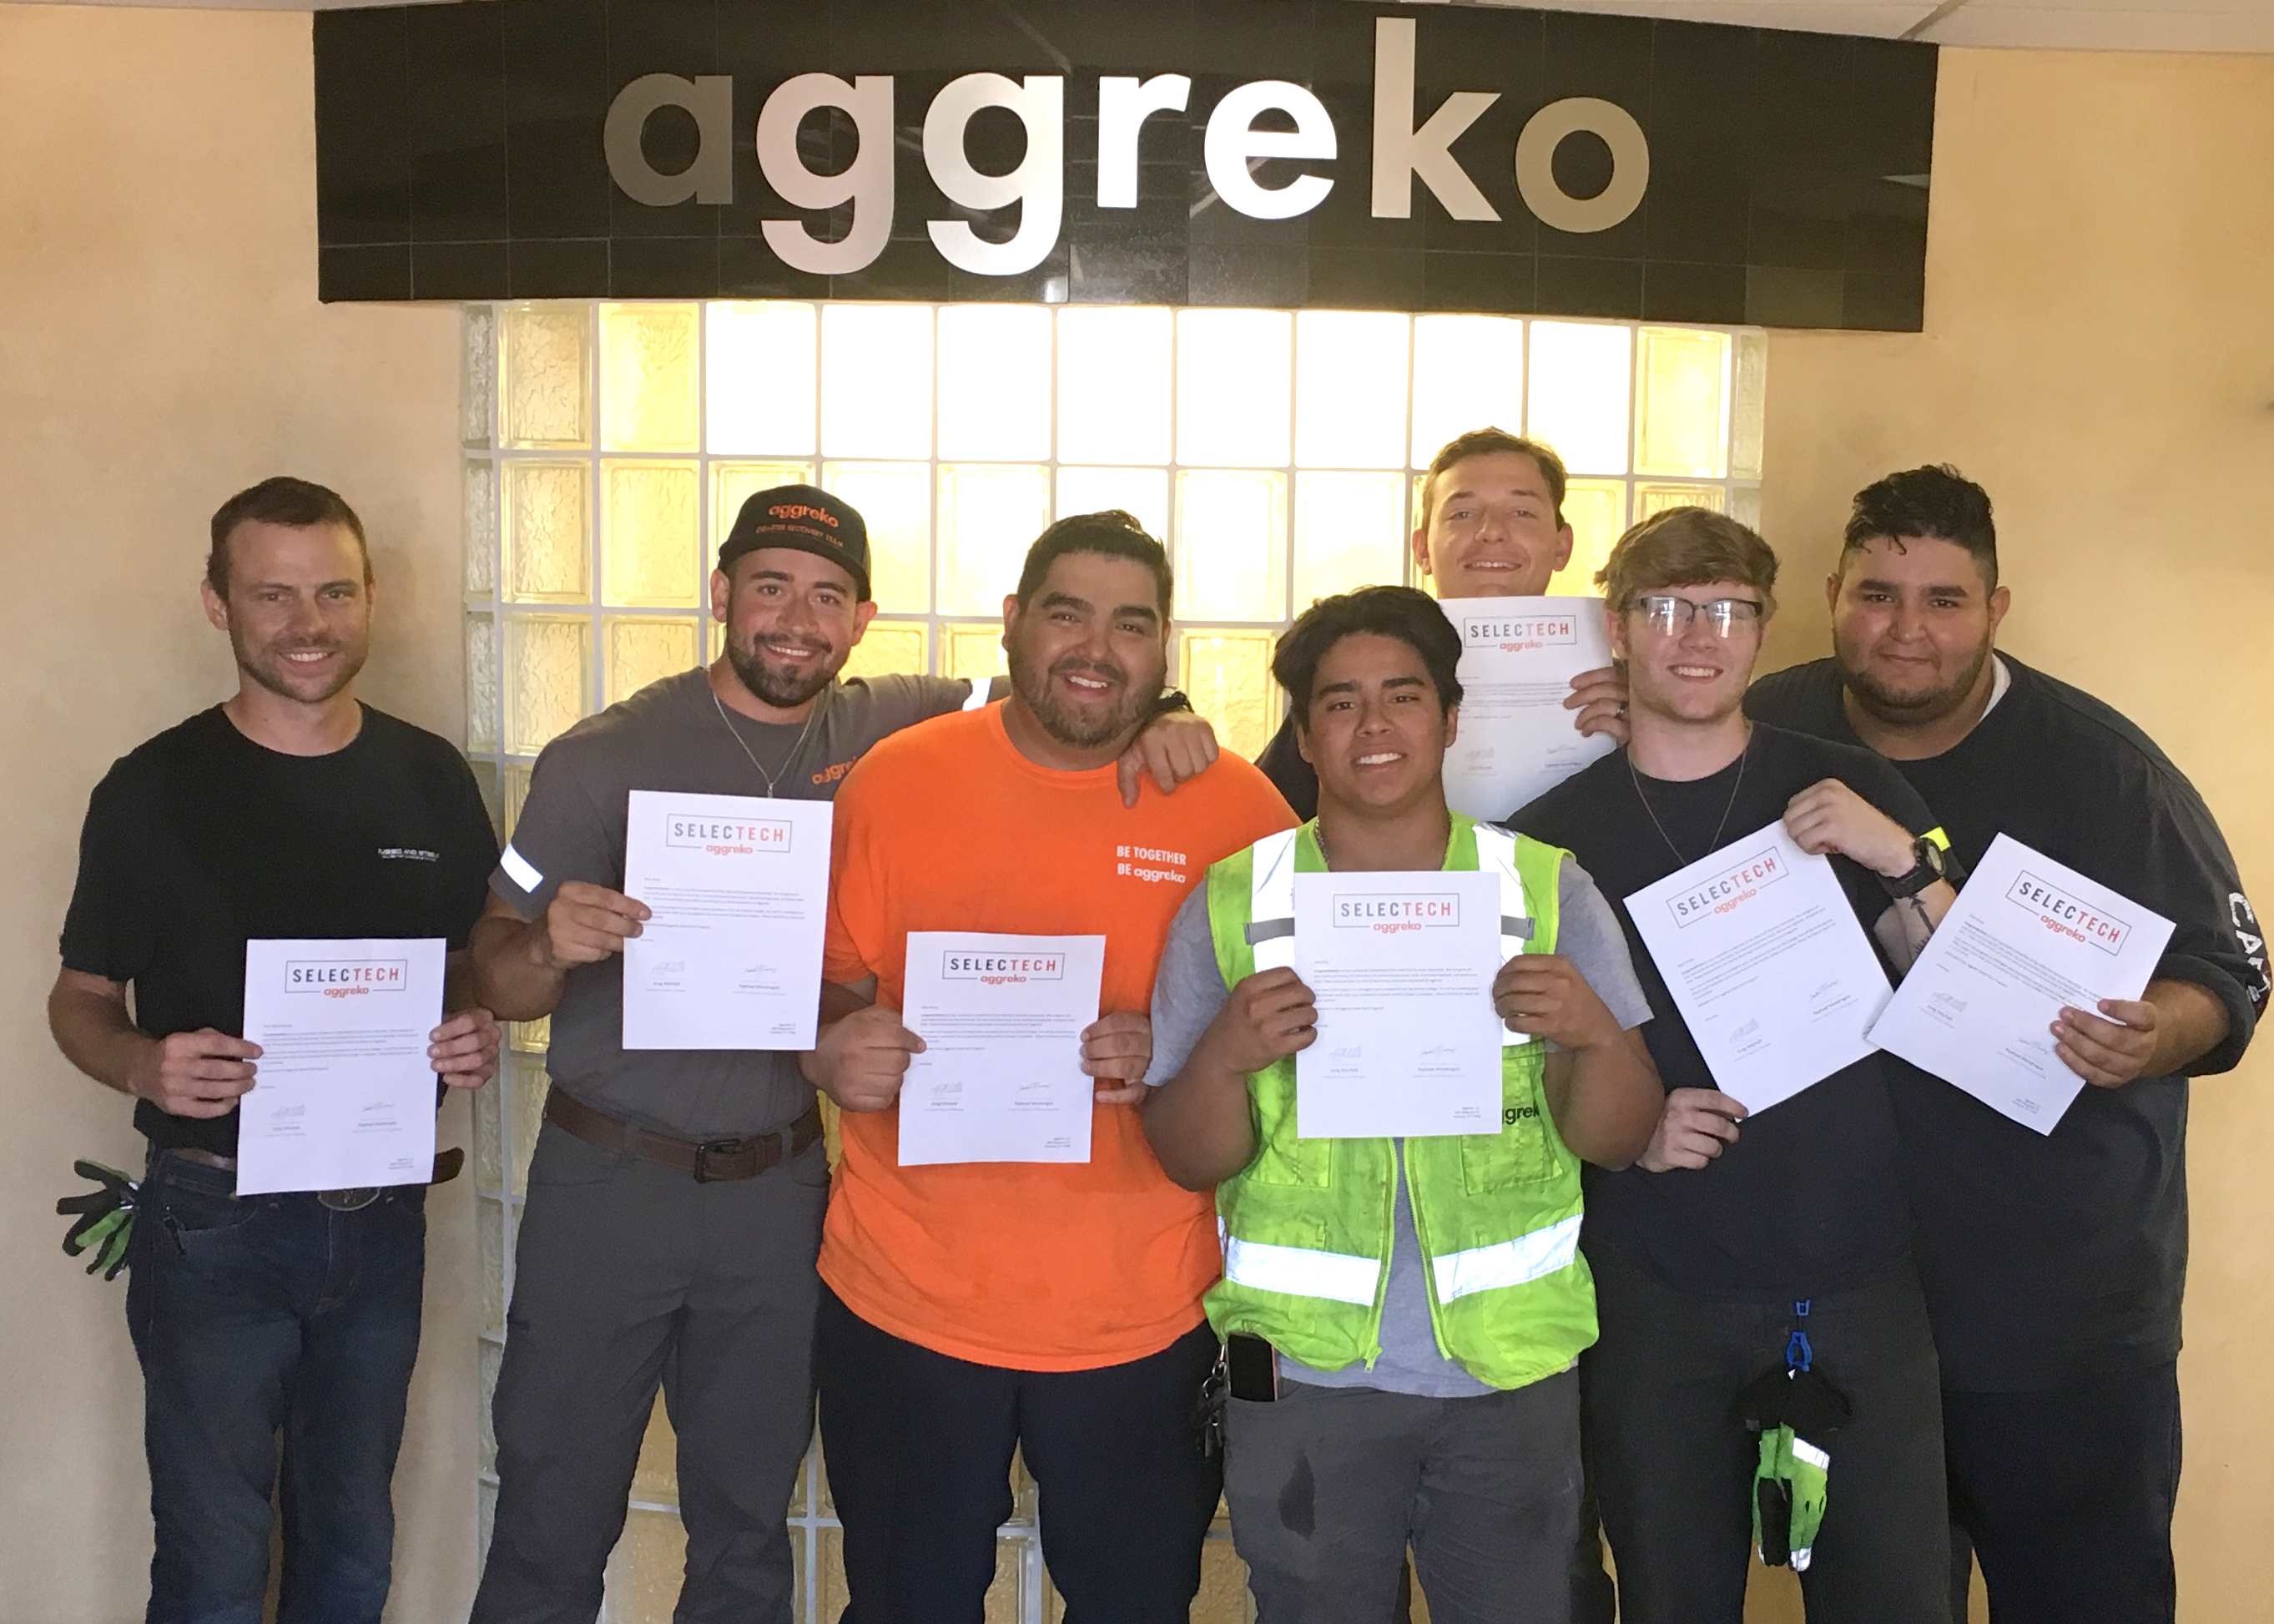 San Jacinto College Partners with Aggreko SelecTech Program